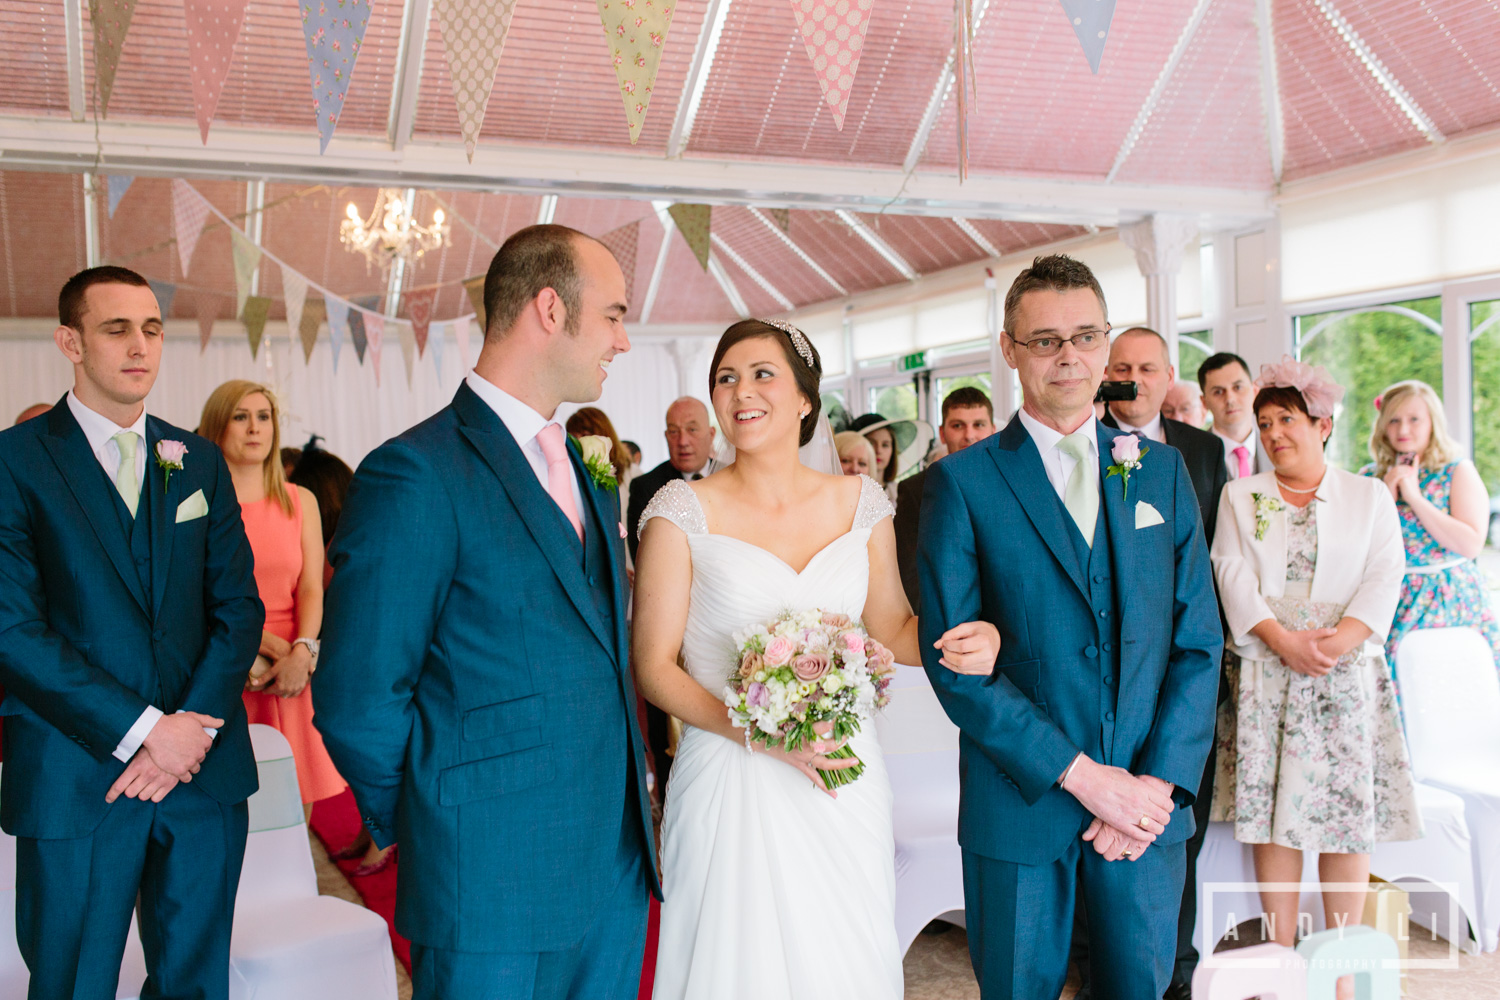 Wroxeter Hotel Shropshire Wedding Photographer-GP2A3980.jpg